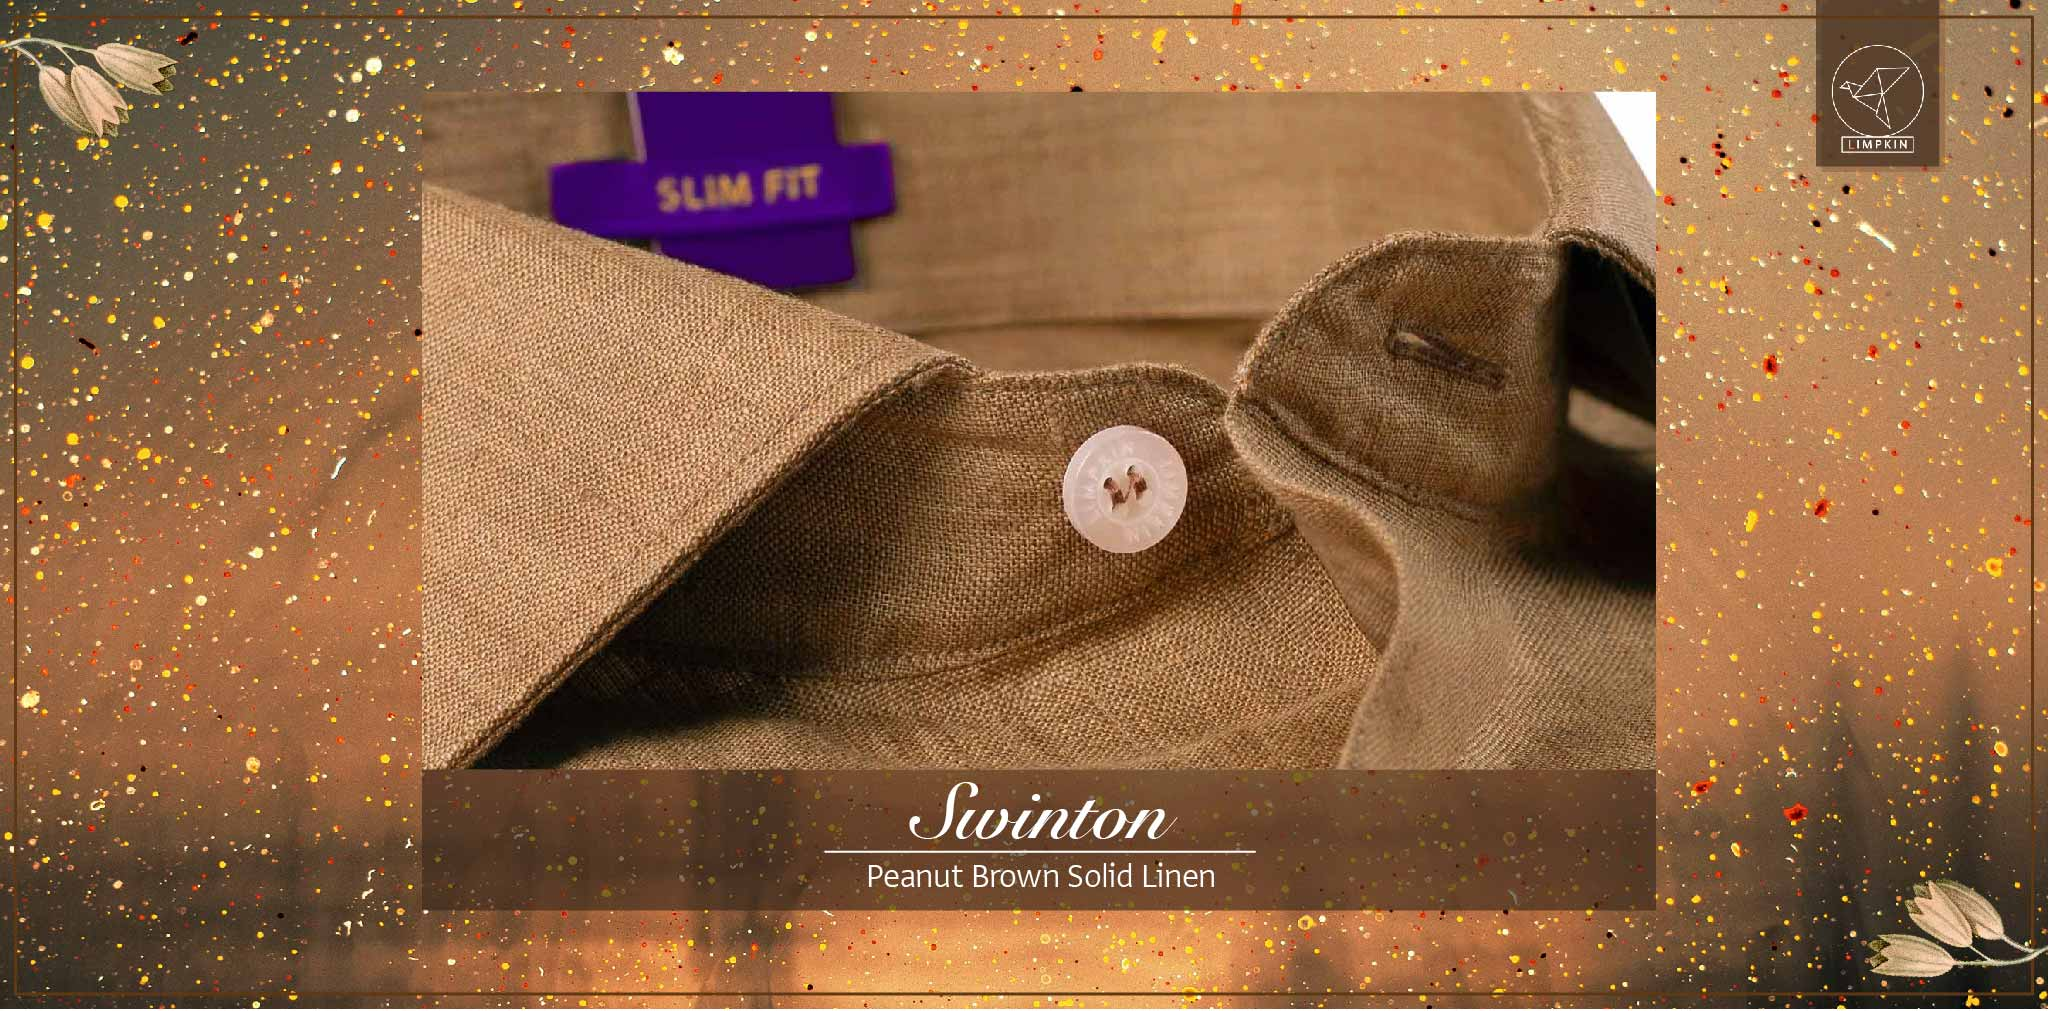 Swinton- Peanut Brown Solid Linen- 66's Lea Pure Luxury Linen- Delivery from 26th Jan - Banner